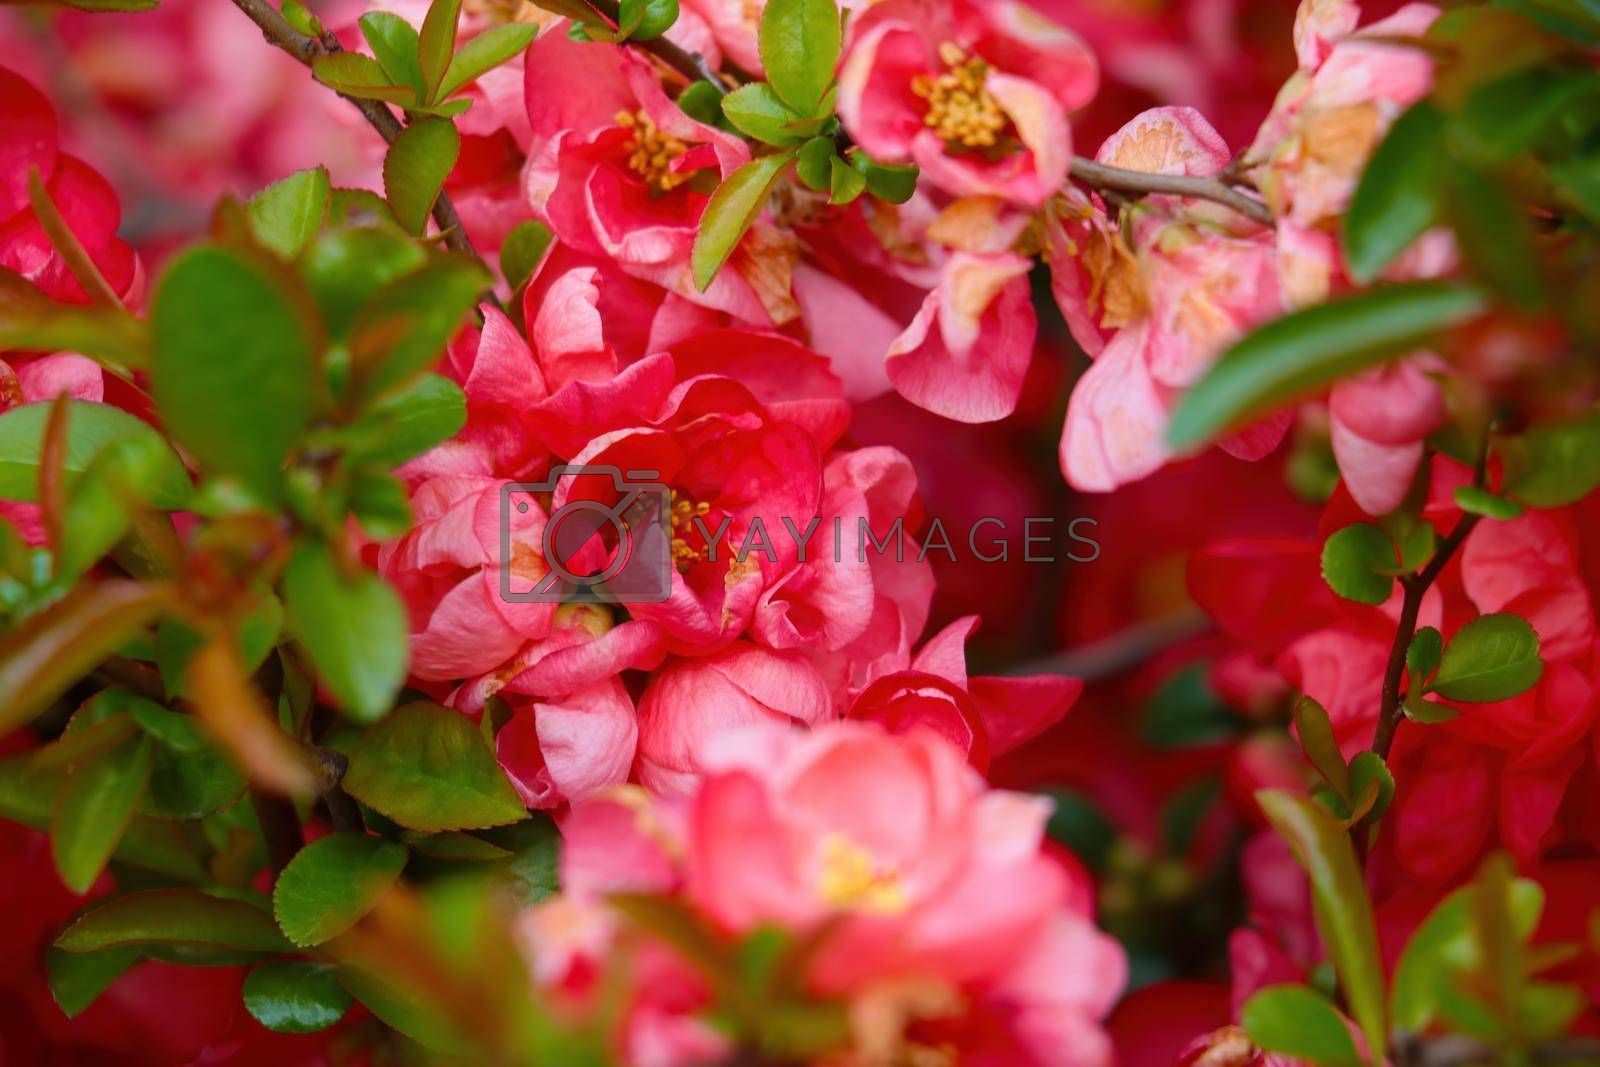 Royalty free image of Beautiful bushes of blooming young roses in the park. Fragrant scent from flowers. by kip02kas